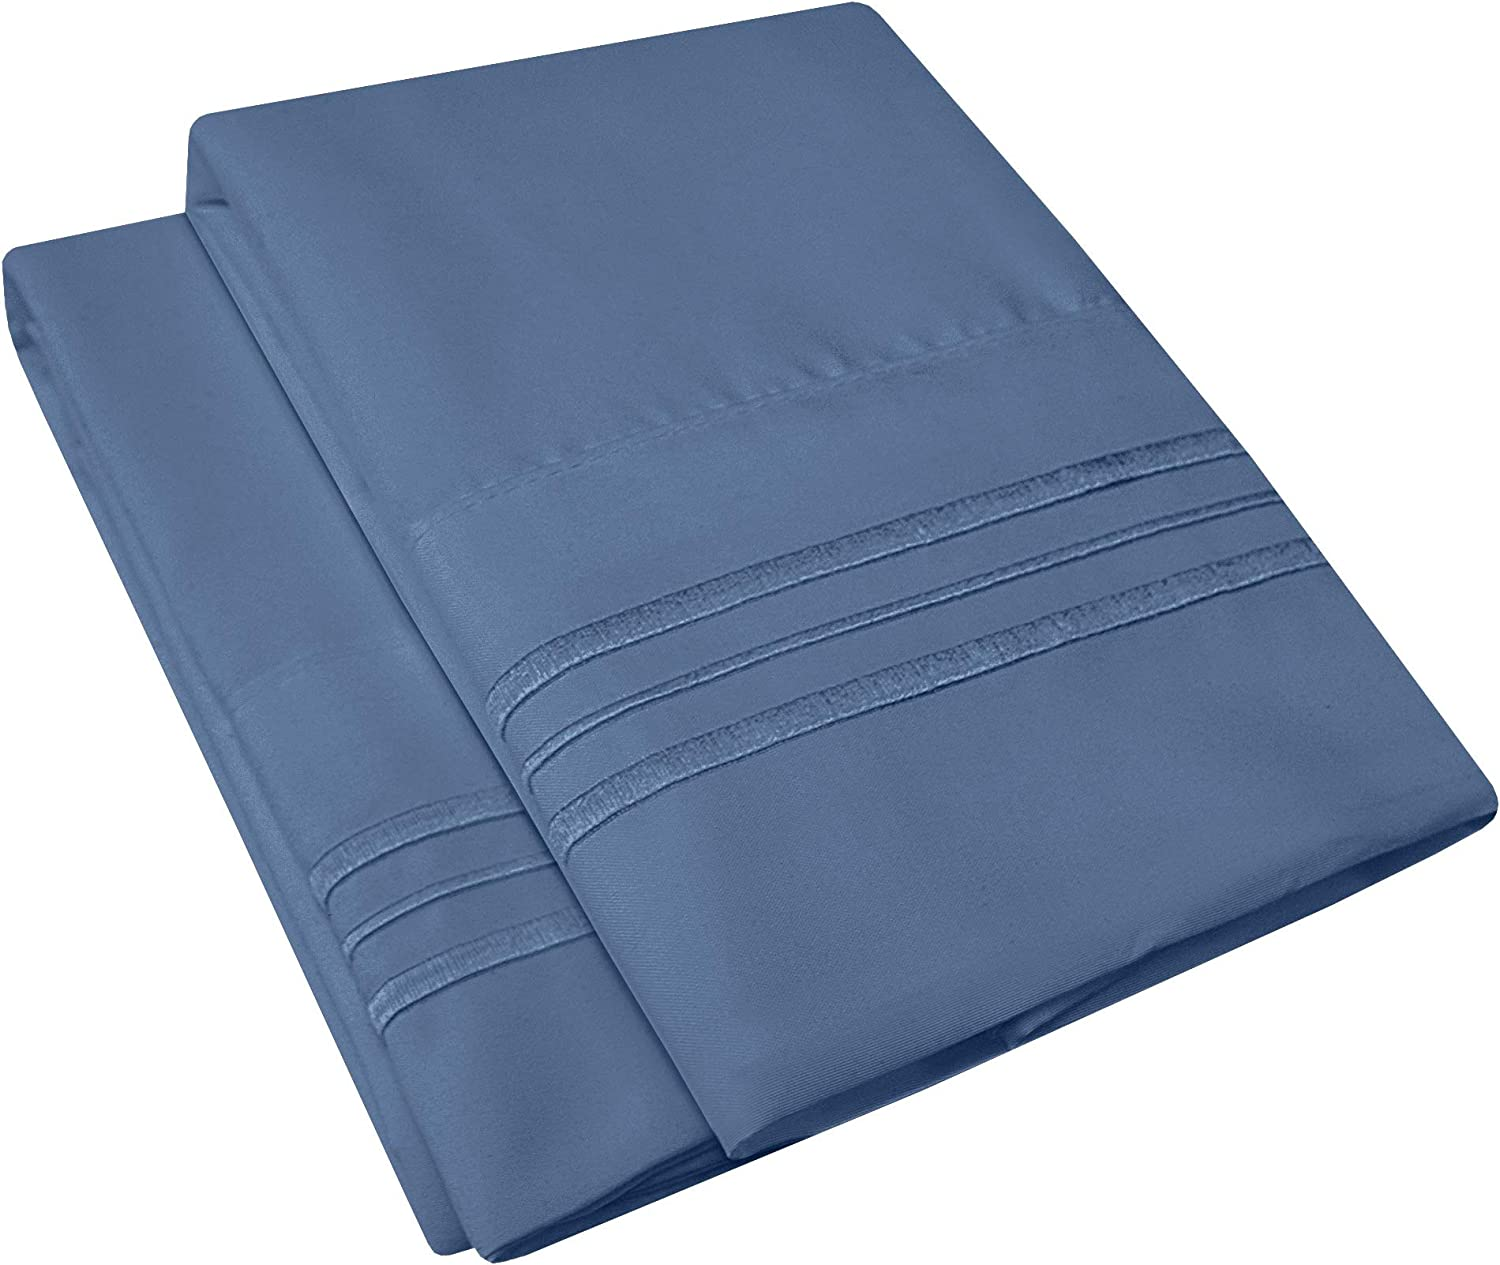 1500 Supreme Collection 2 Pack Bed Pillowcases - Luxury Embroidered Premium Softness and Wrinkle Resistant Breathable Additional Pillowcases for Bed Sheets - King, Denim